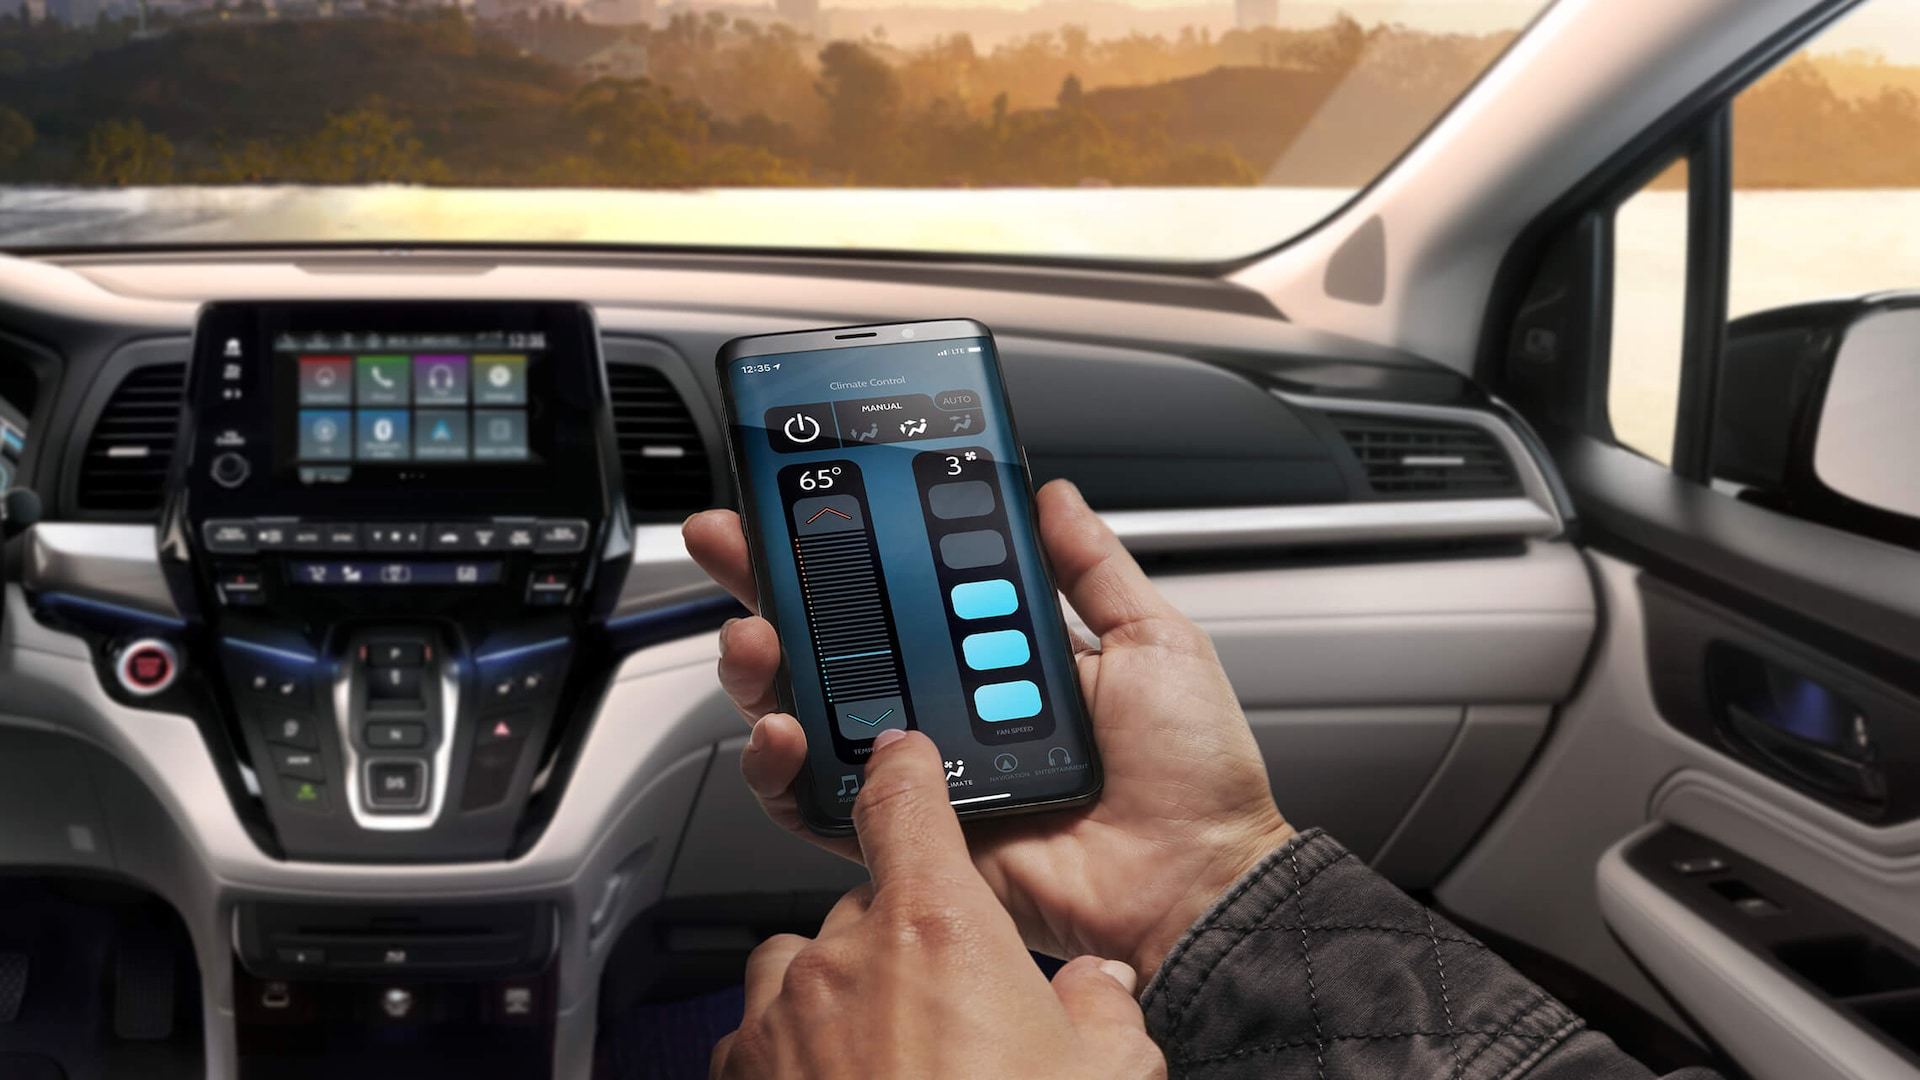 Close-up of a hand holding a smartphone, showing the CabinControl® app's climate control screen, in the 2022 Honda Odyssey.